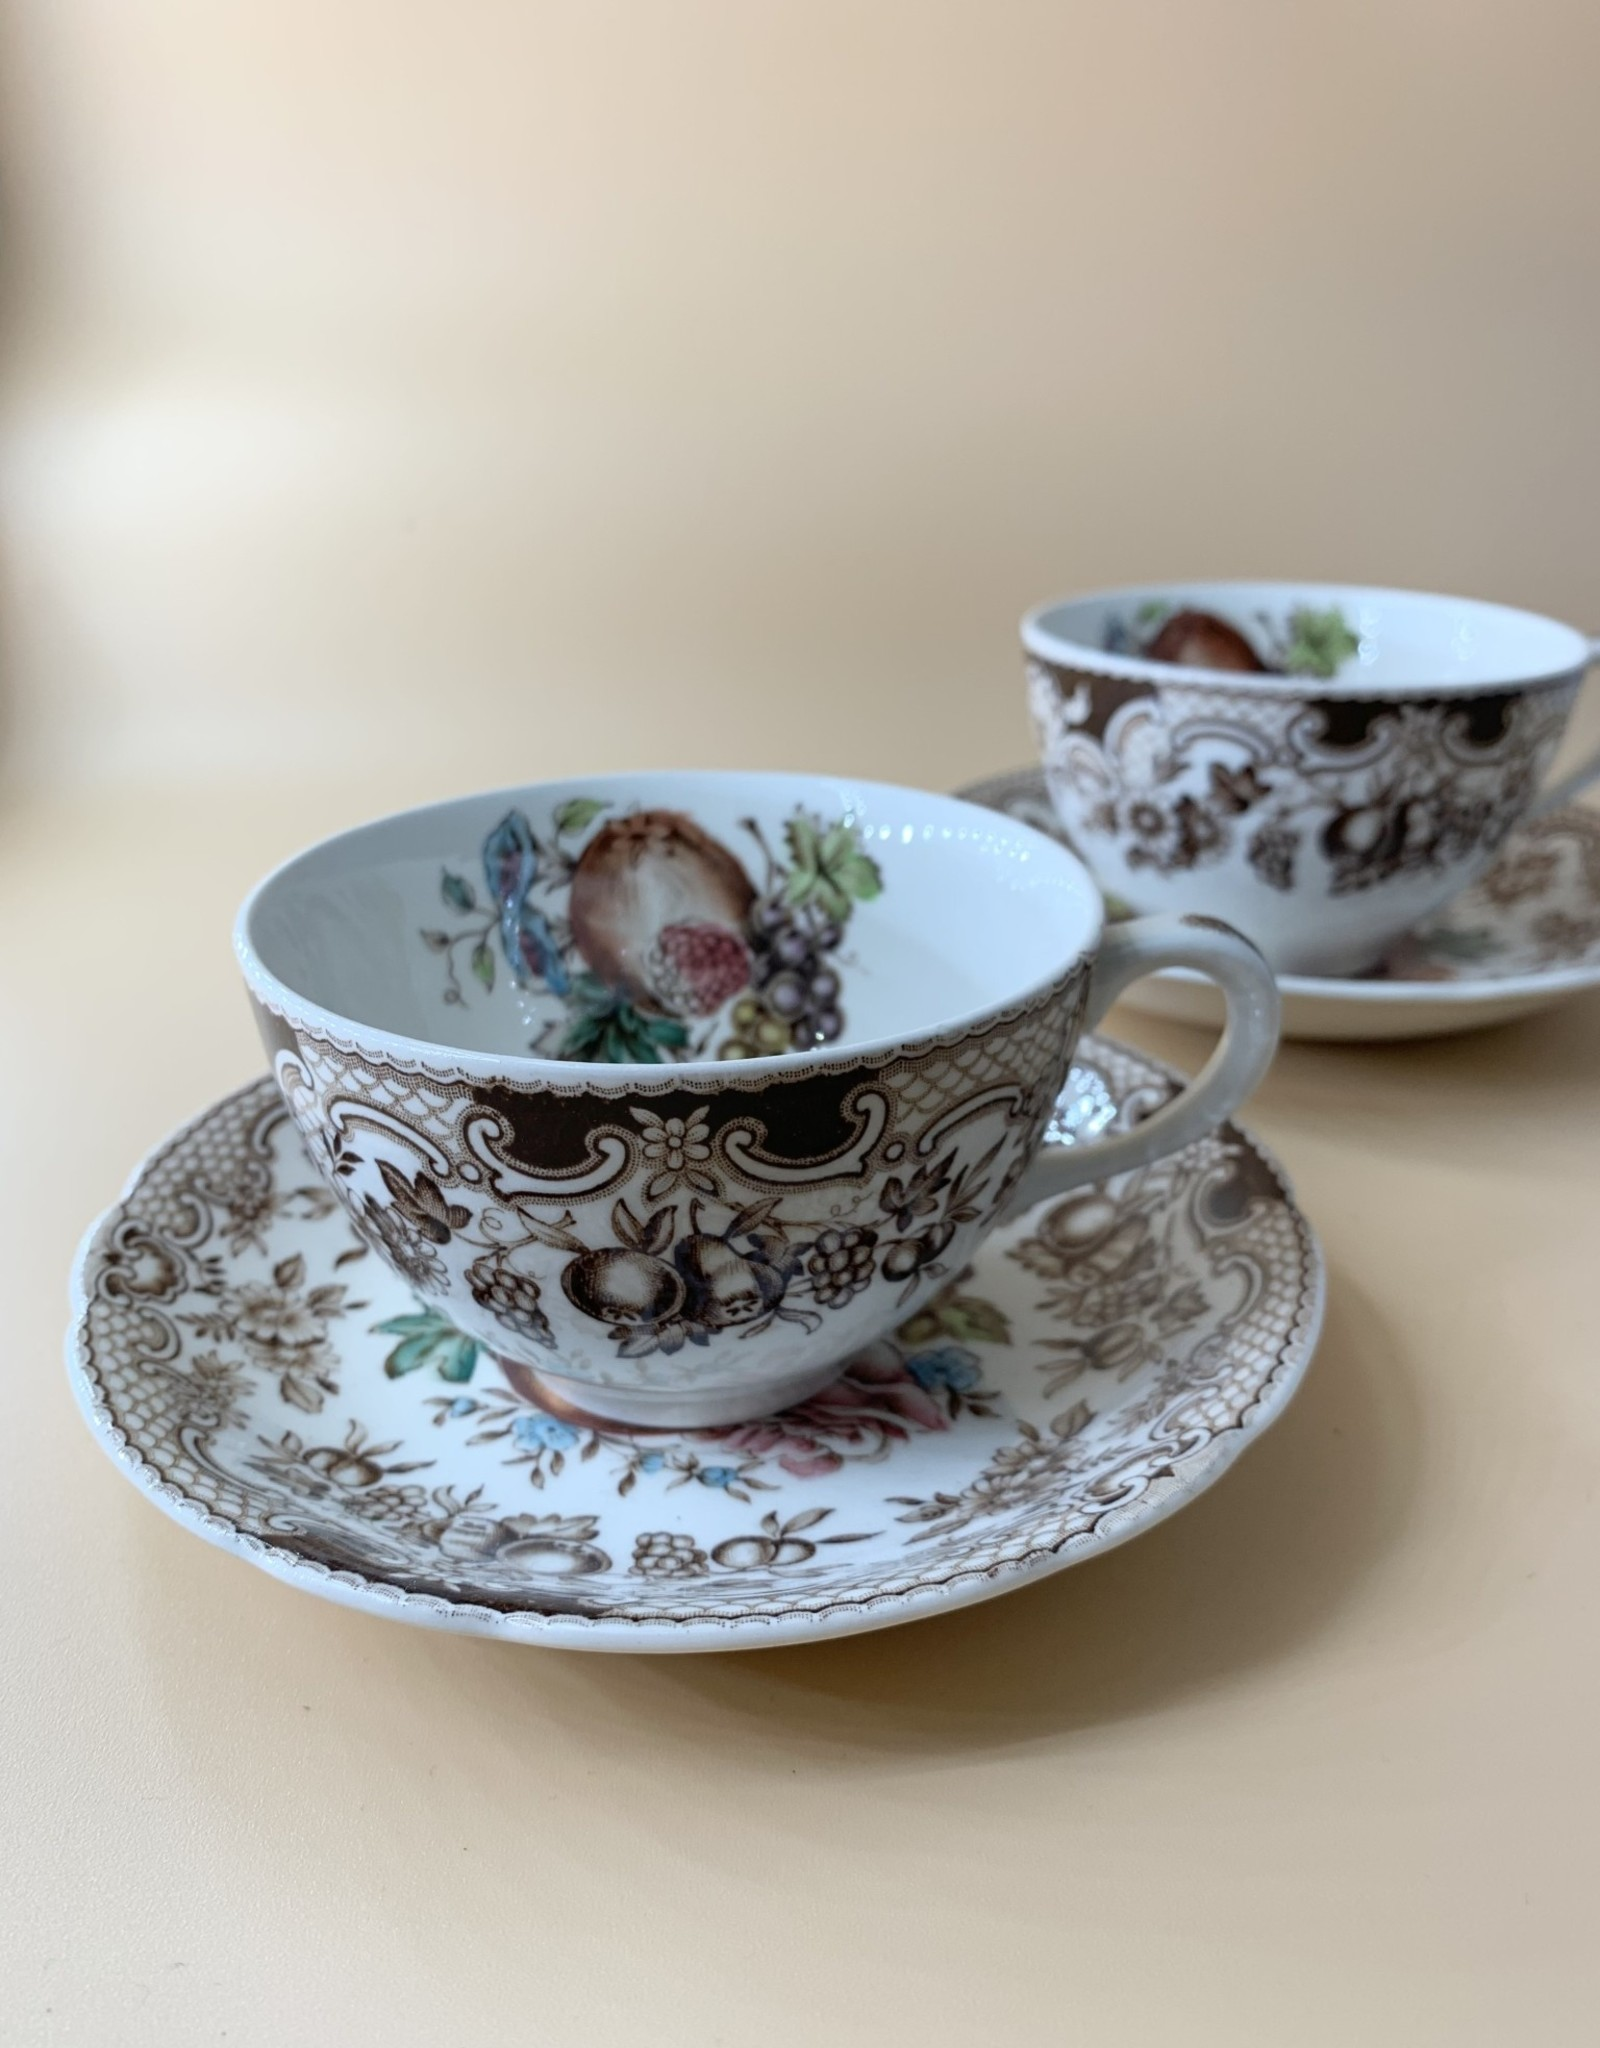 Set of 6 Johnson Brothers Windsor Ware Tea Cup and Saucers